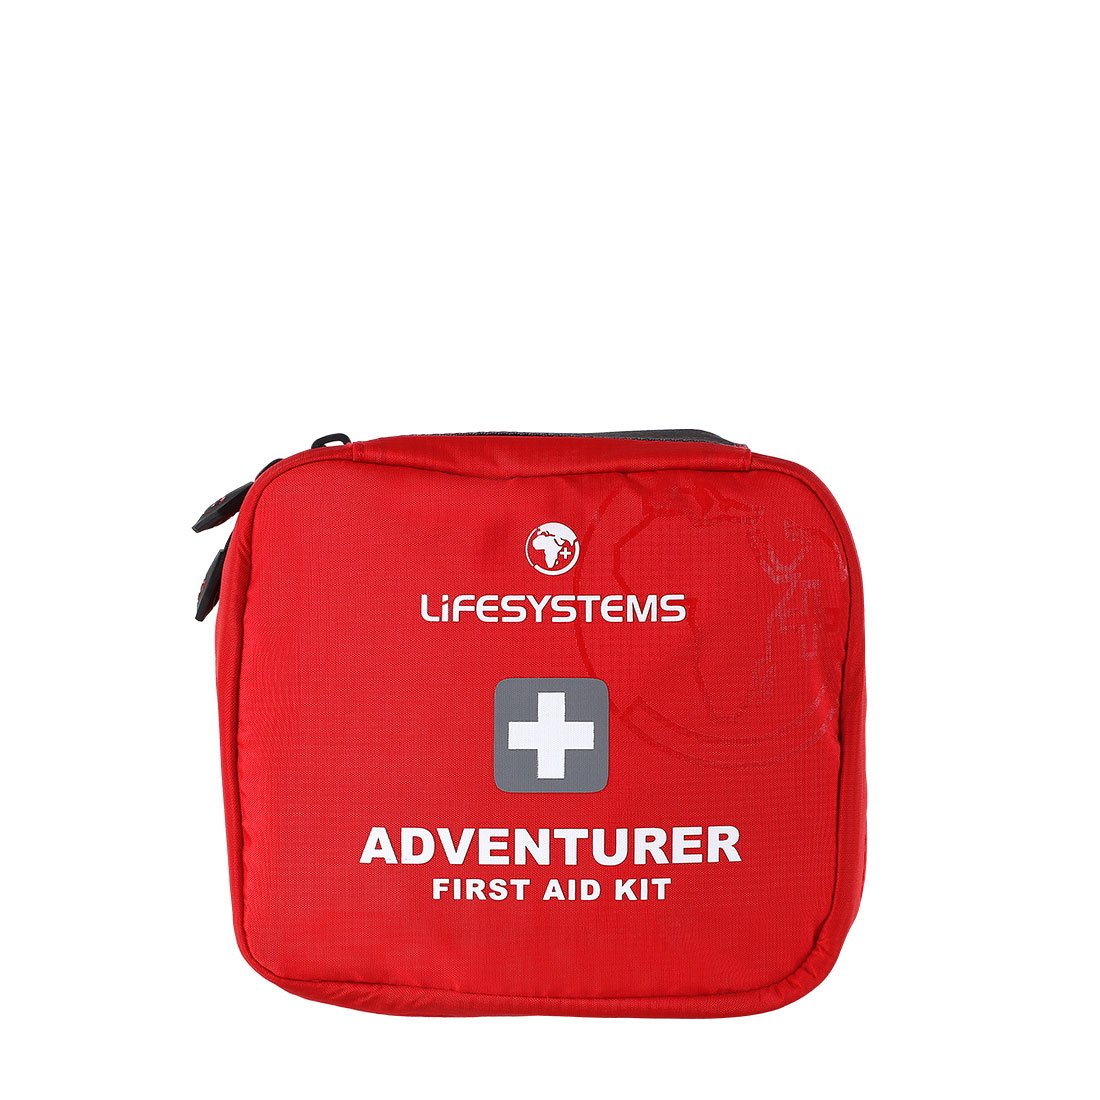 Adventurer First Aid Kit Travel First Aid Kits Lifesystems